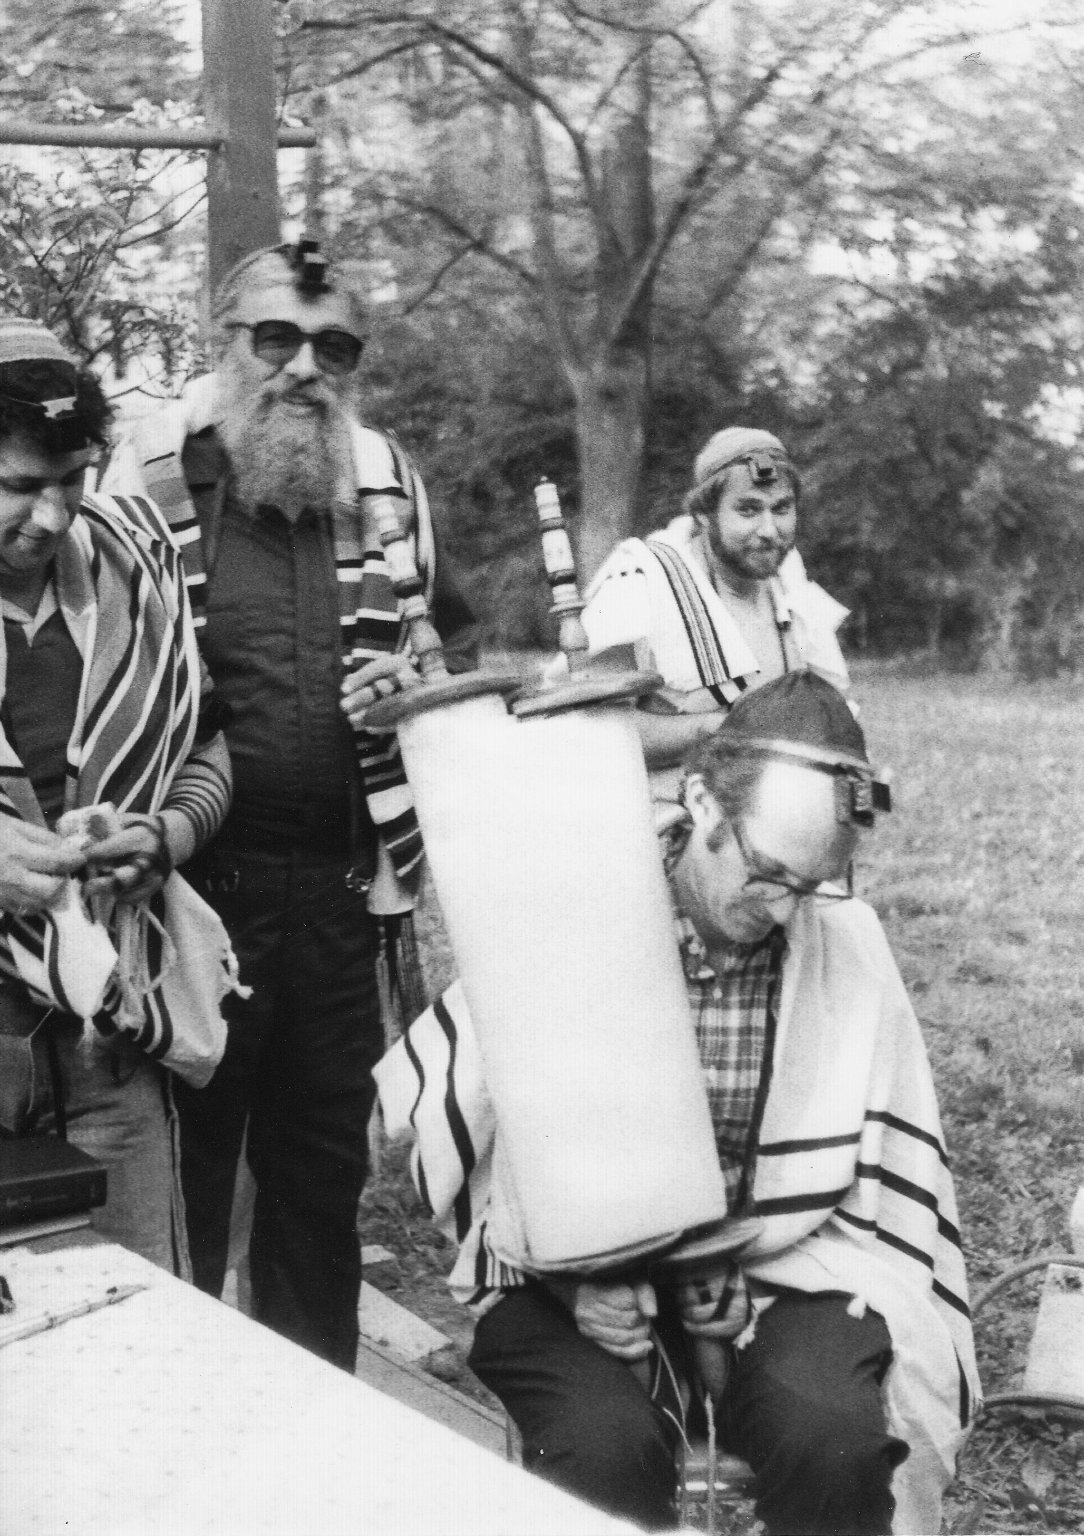 Rabbi Zalman Schachter (with three unidentified men, one holding a Torah scroll) wearing Rashi and Rabbenu Tam tefillin on the same strap according to his custom at the time, 1980s.